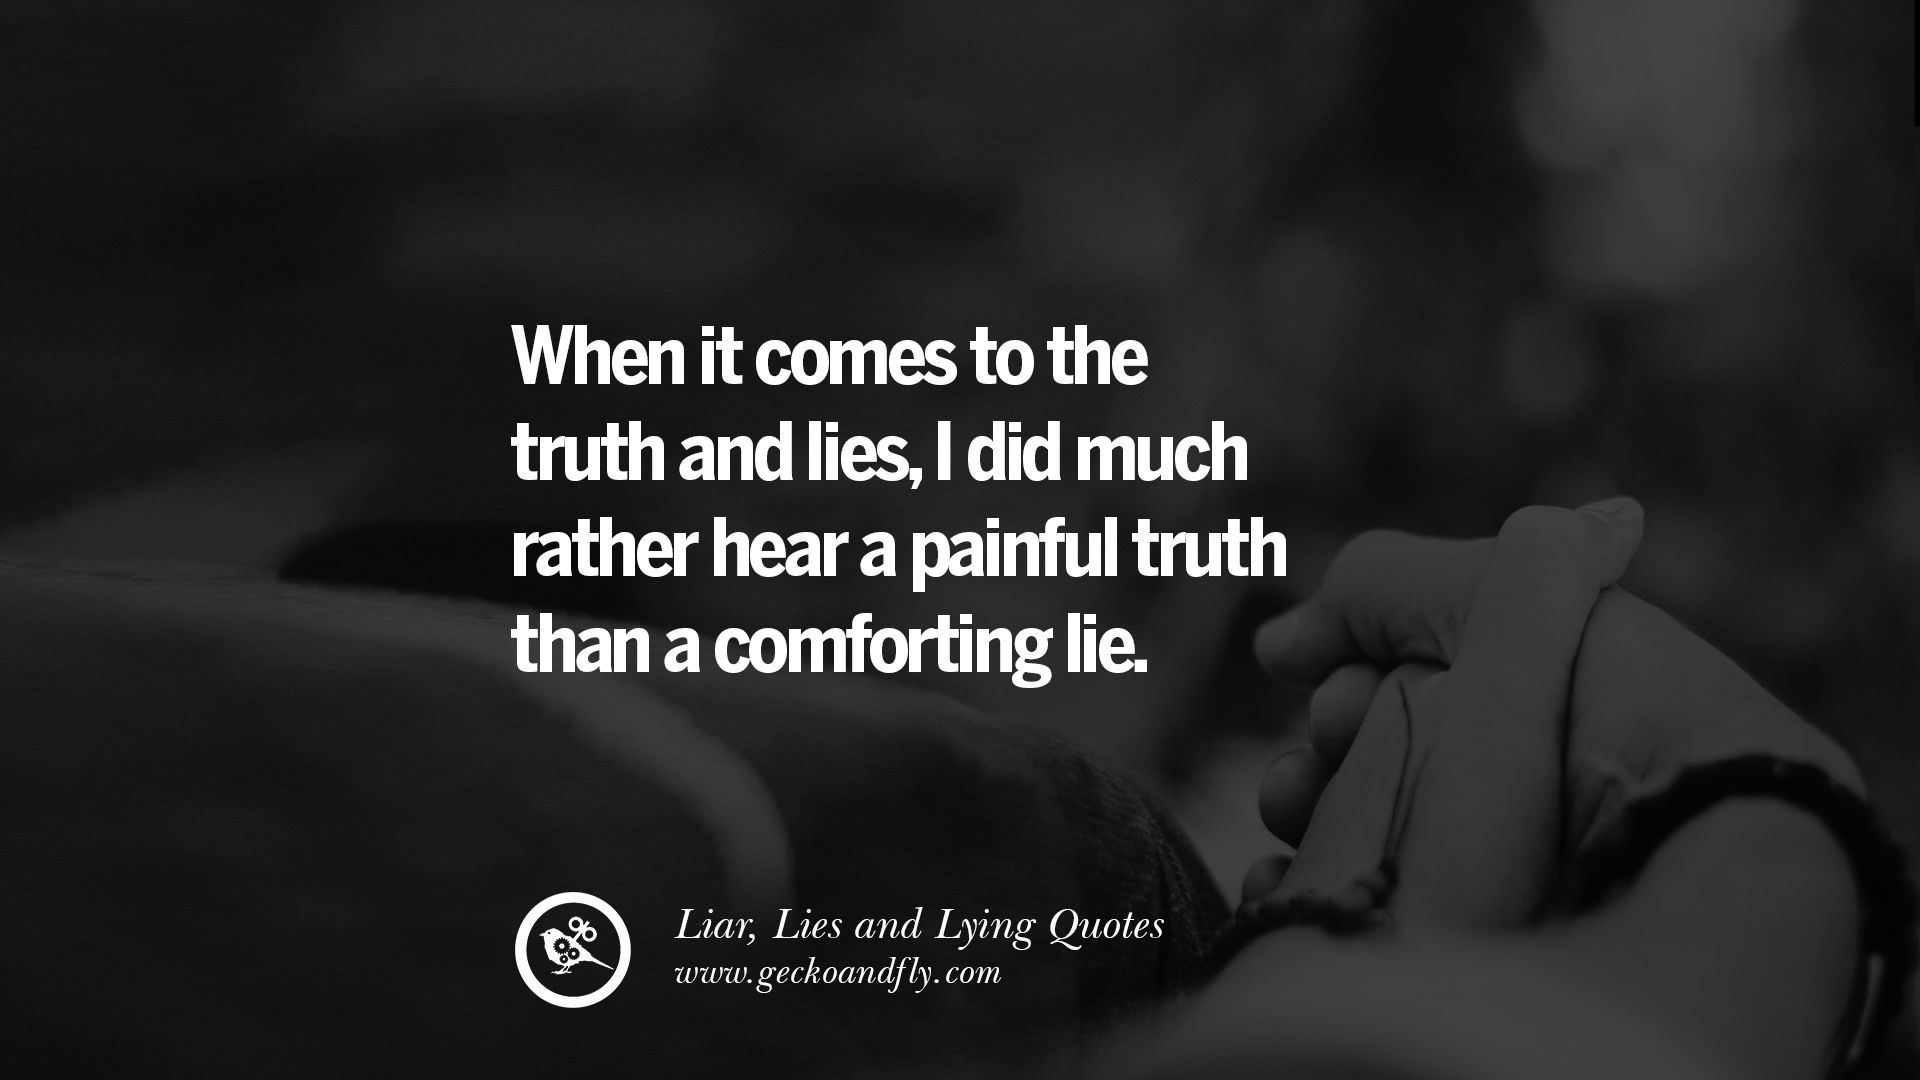 60 Quotes About Liar Lies And Lying Boyfriend In A Relationship Funny Dating Quotes Liar Quotes Lies Quotes